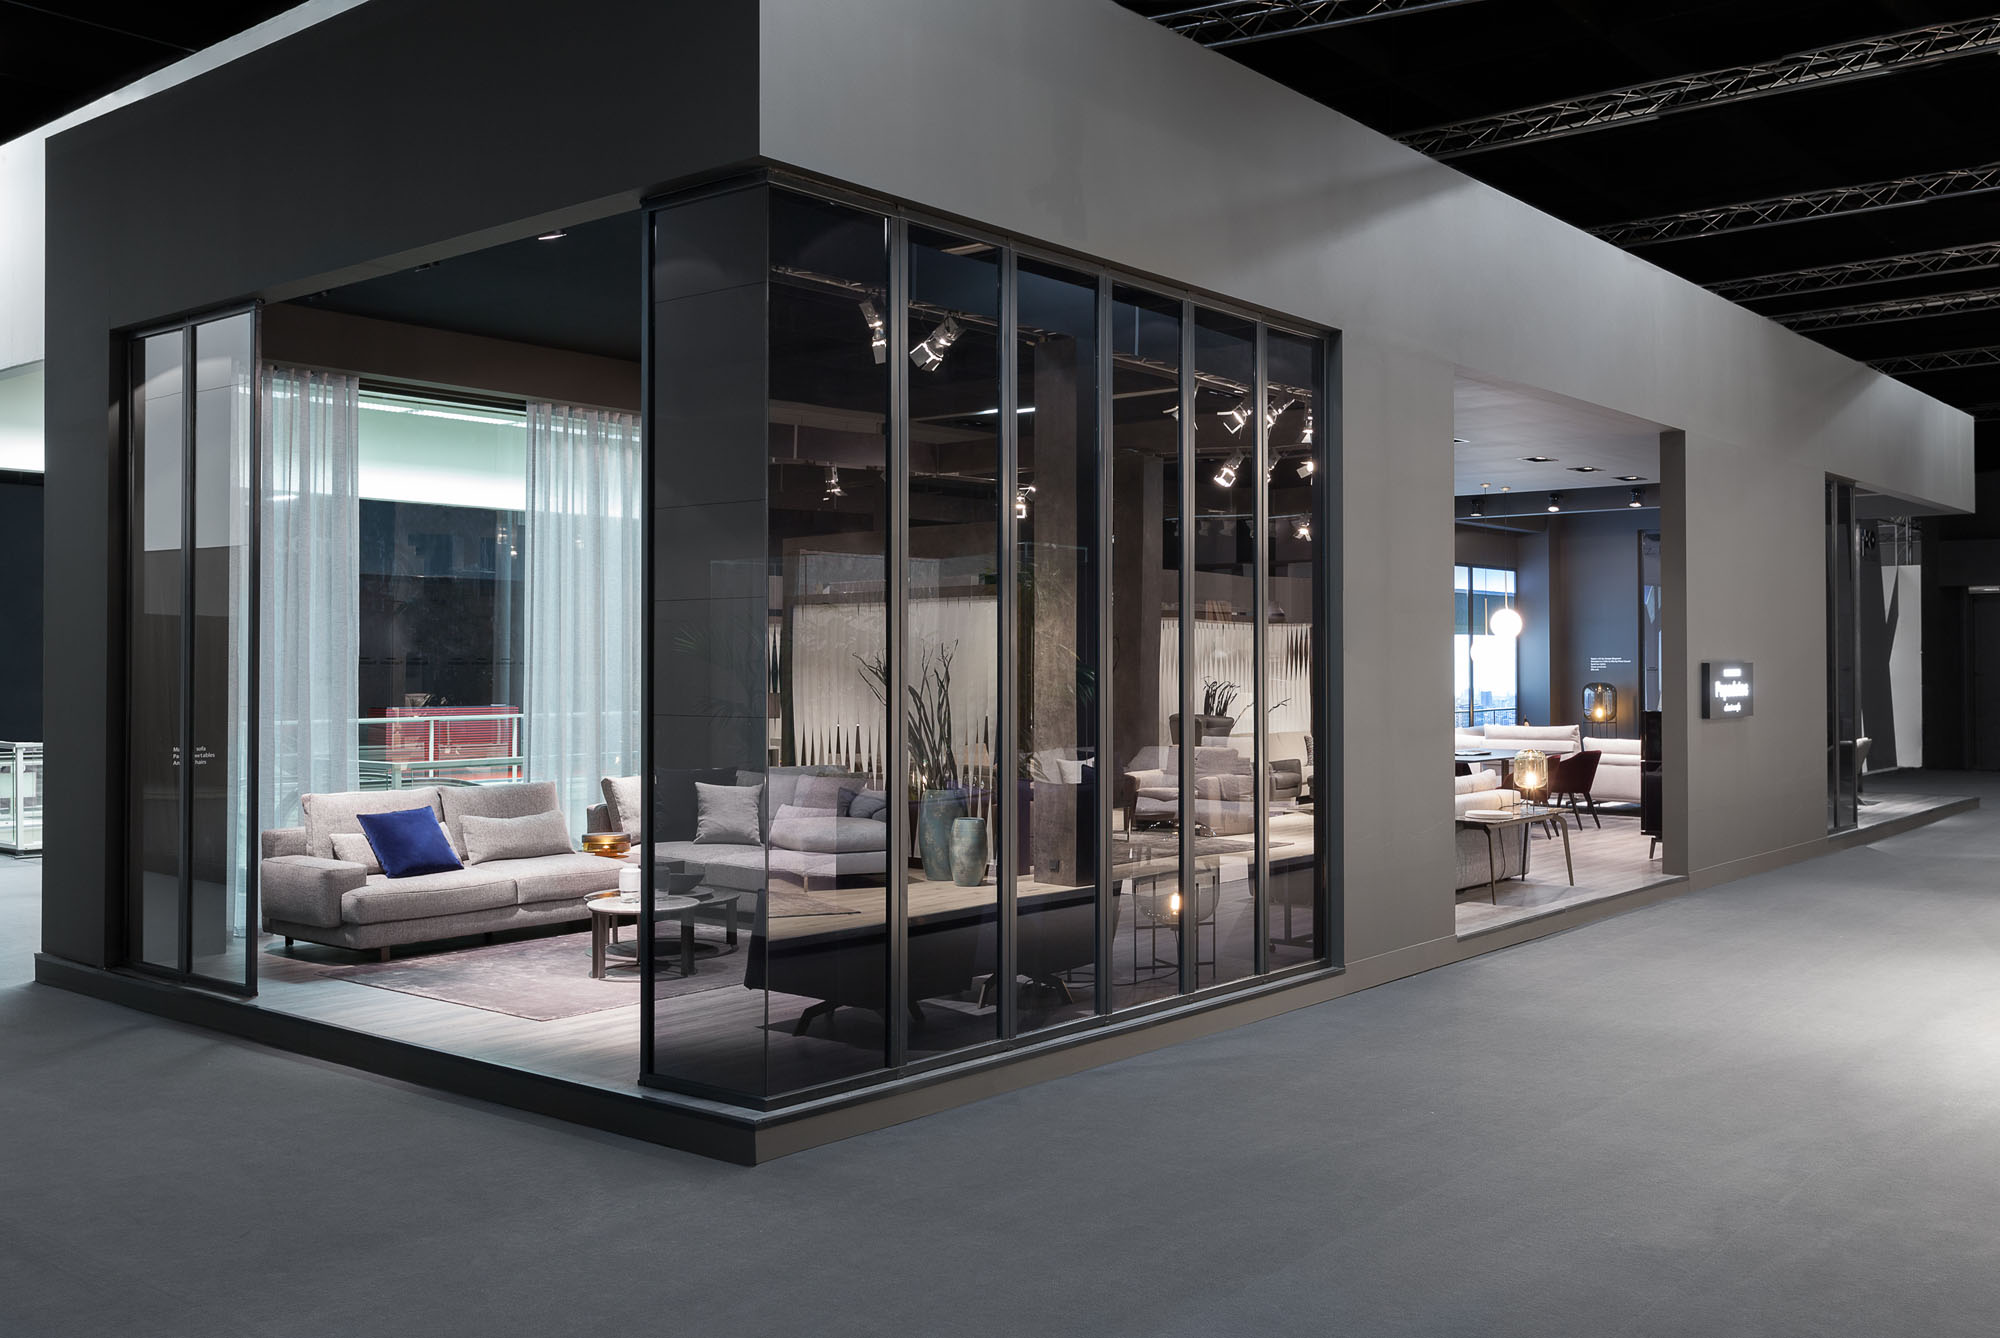 Shanghai Küche Köln Papadatos At Imm Cologne 2017 Papadatos